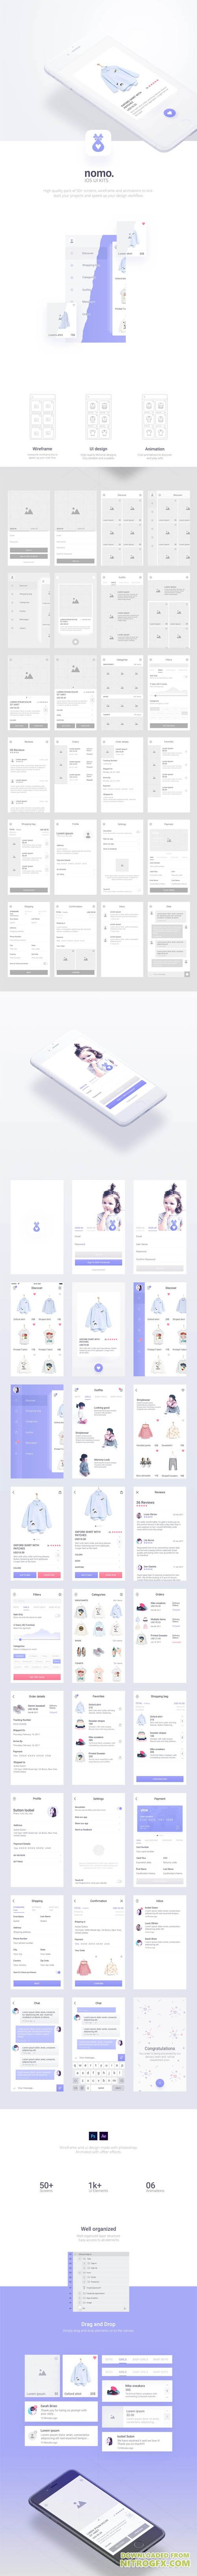 Nomo Mobile UI Kit